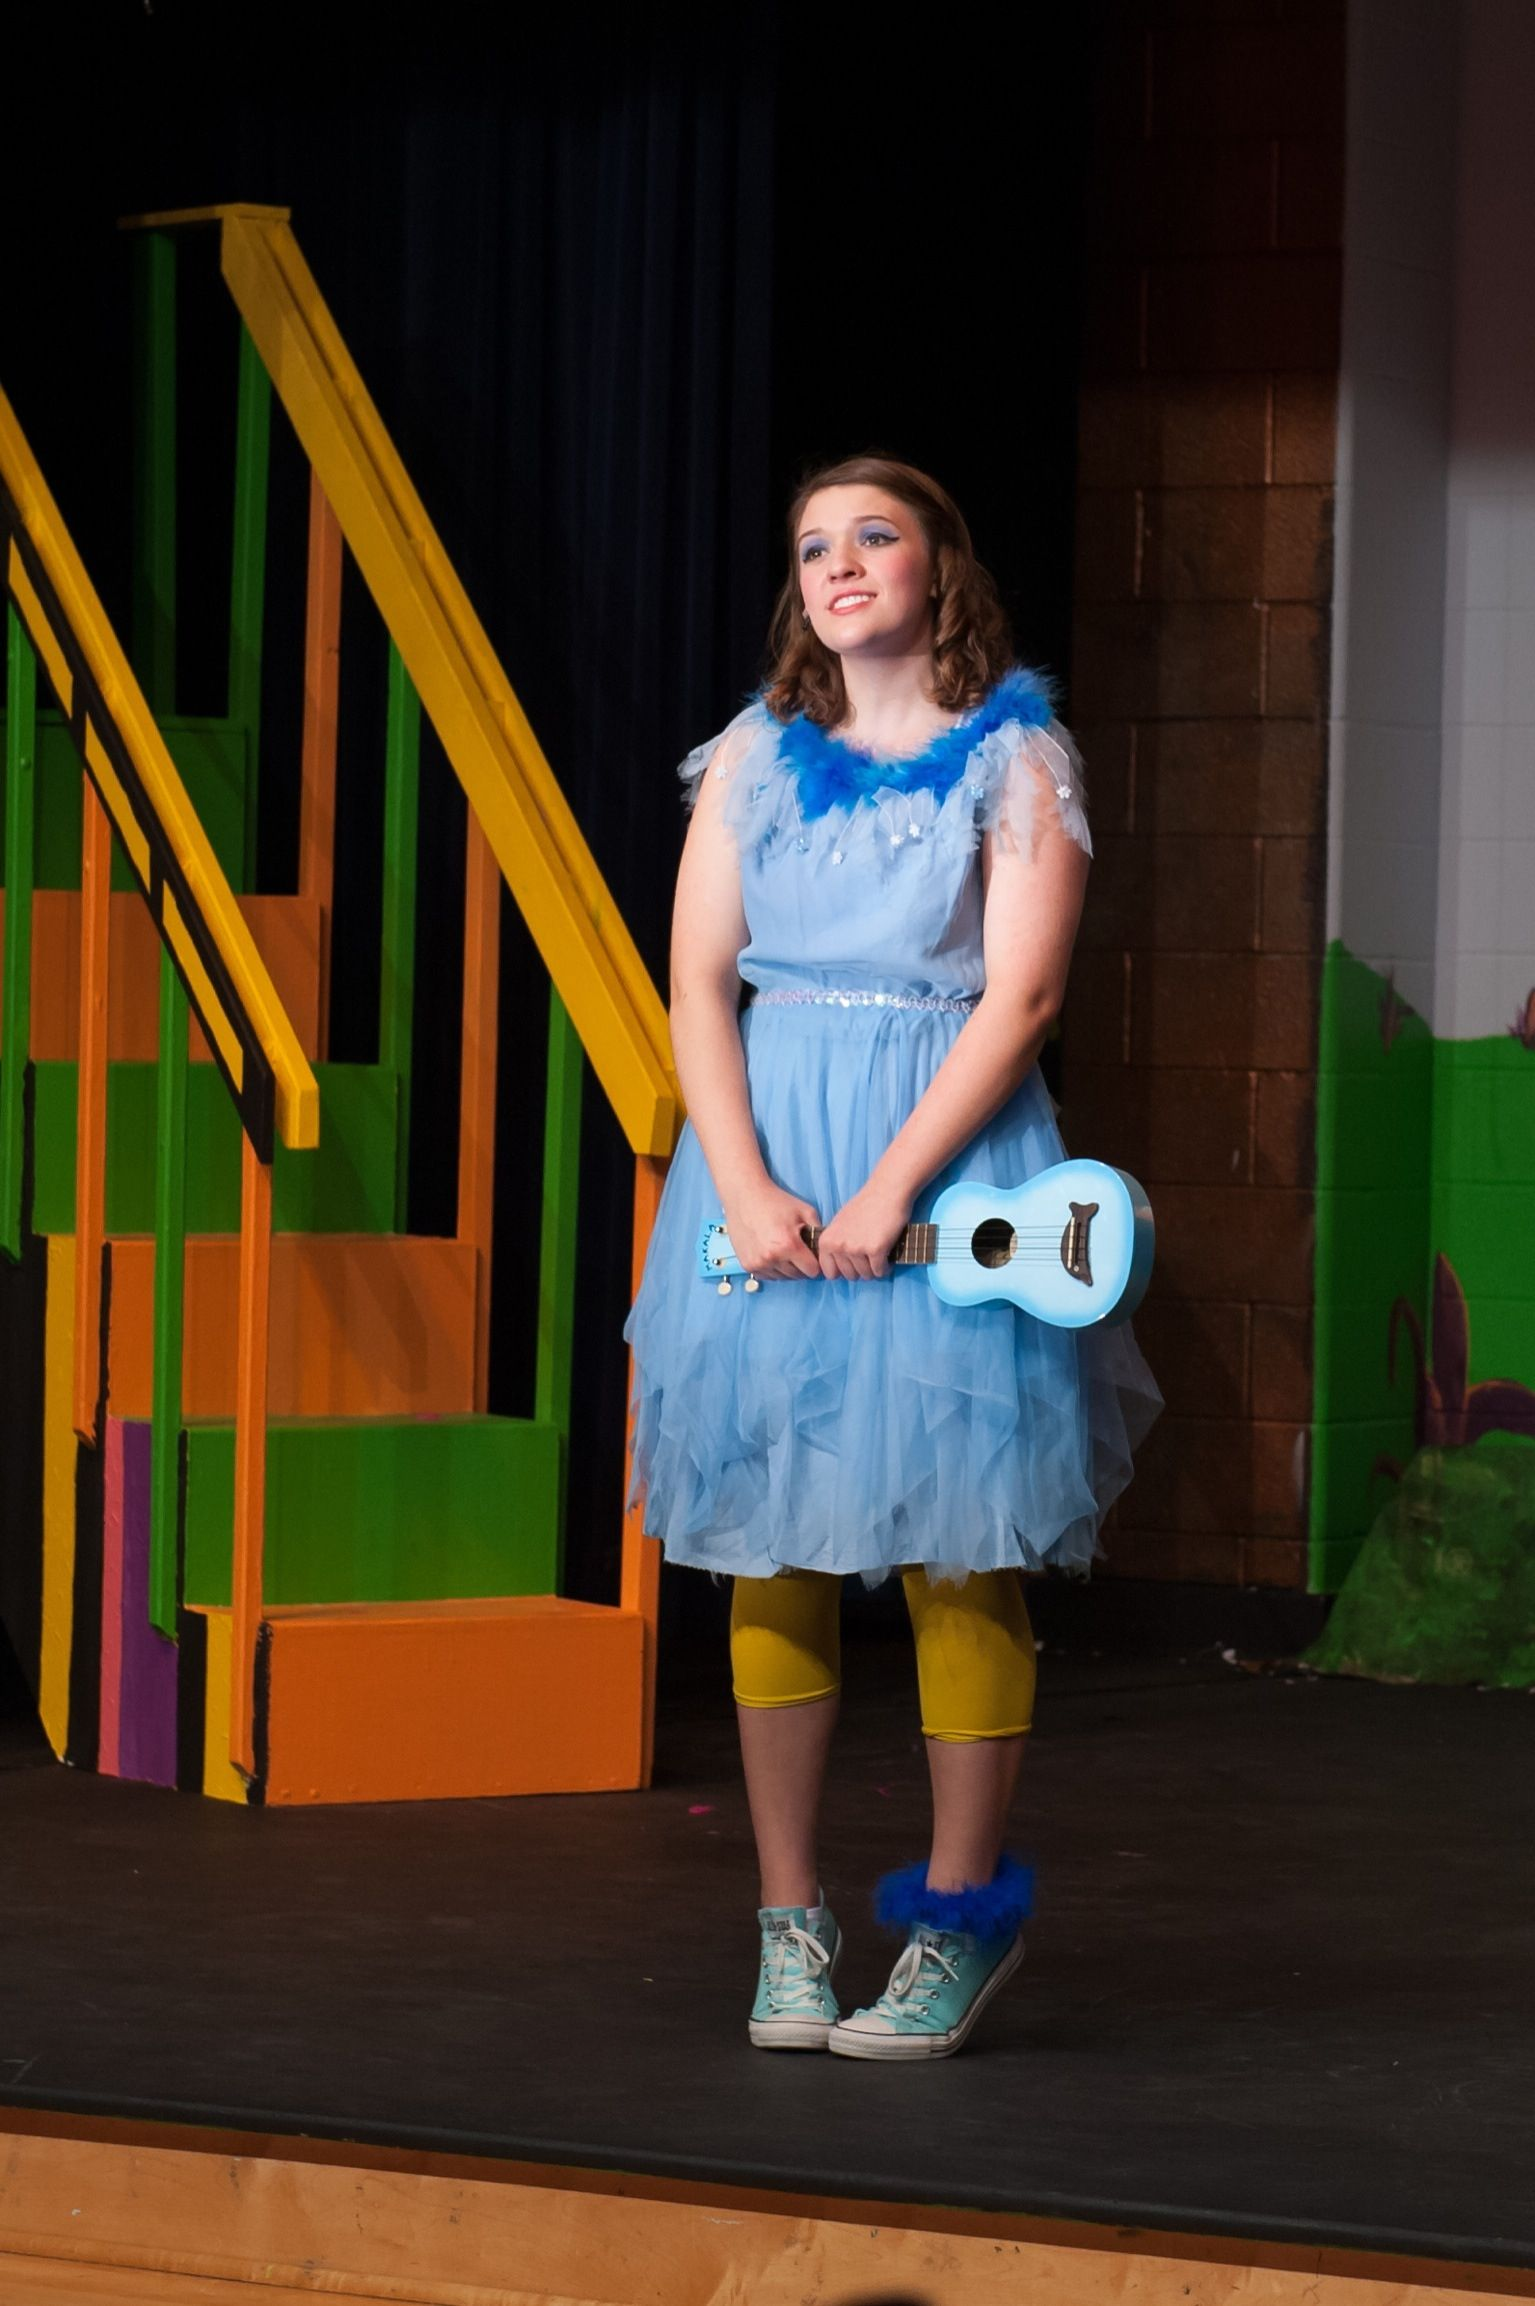 Gertrude Mcfuzz | maybe I should learn to play the ukulele because dream role  sc 1 st  Pinterest & Gertrude Mcfuzz | maybe I should learn to play the ukulele because ...